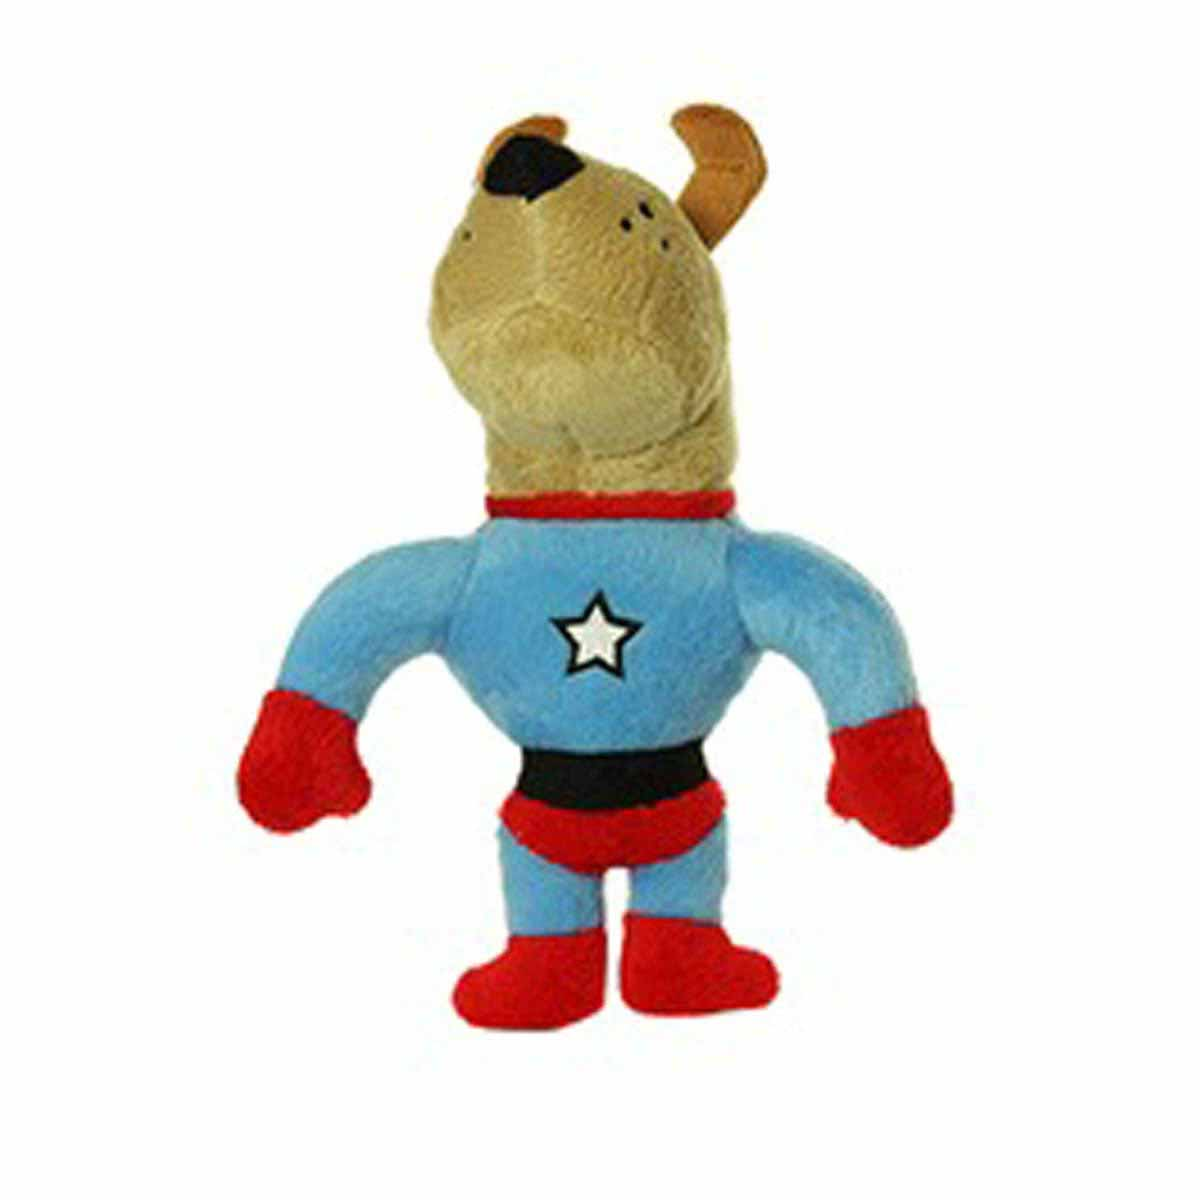 Mighty Toon Dog Toy - SuperDog